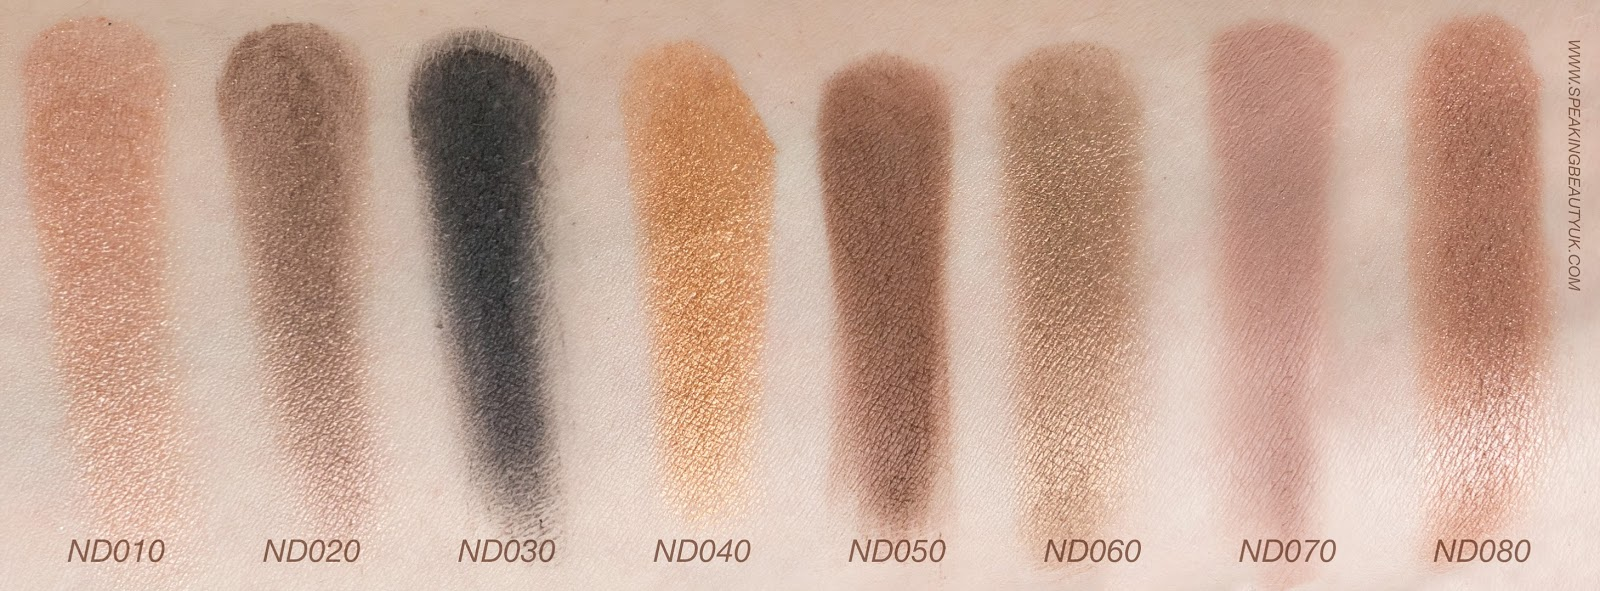 Zoeva Nude Spectrum Eyeshadow Palette swatch